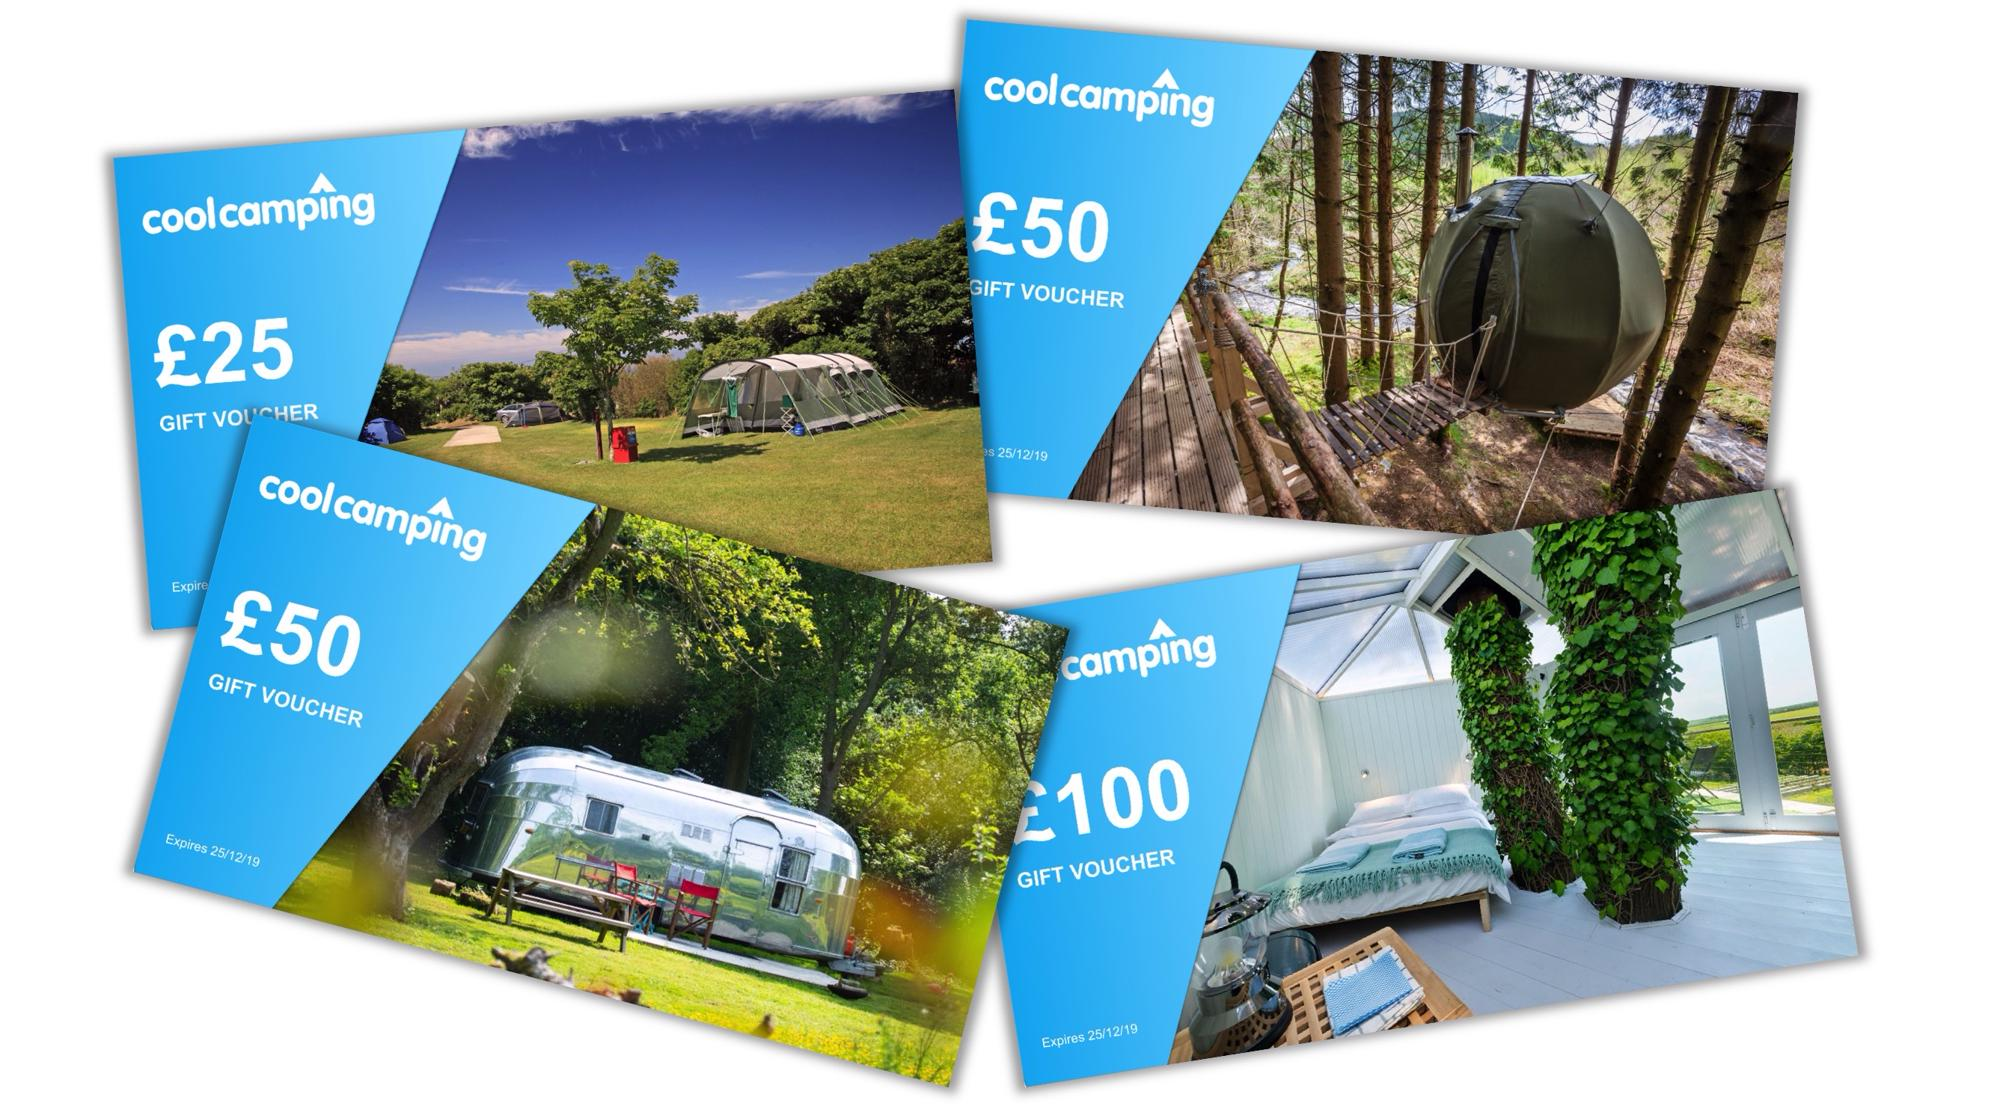 Cool Camping: Campsites & Glamping in the UK and Europe ...